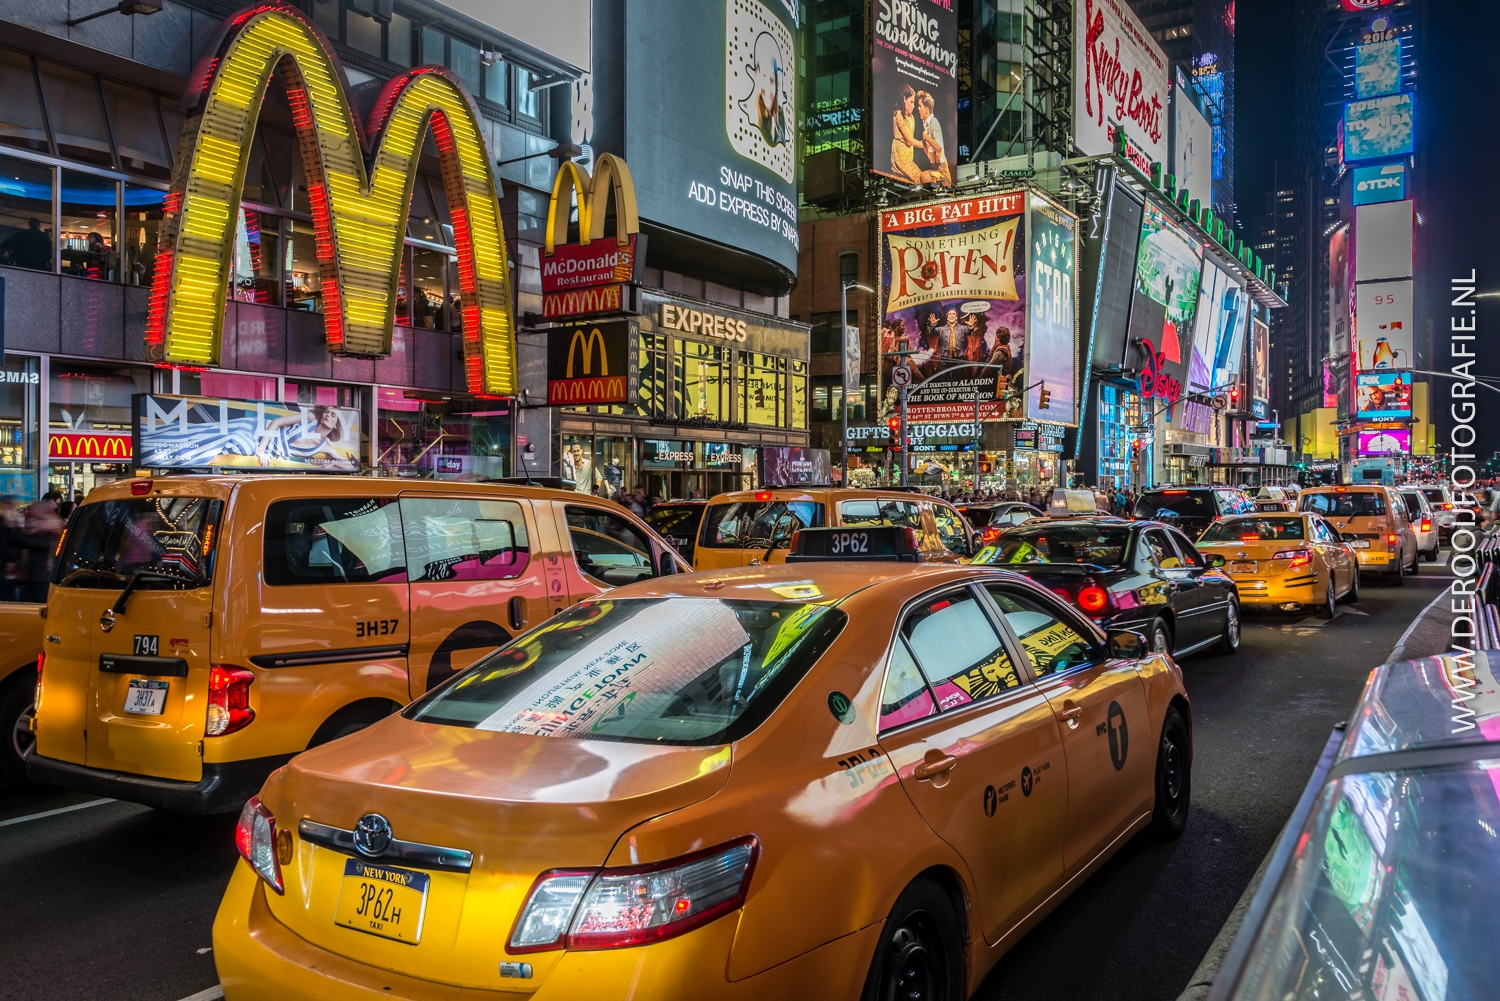 Mooiste foto's New York - Yellow cabs op Time Square